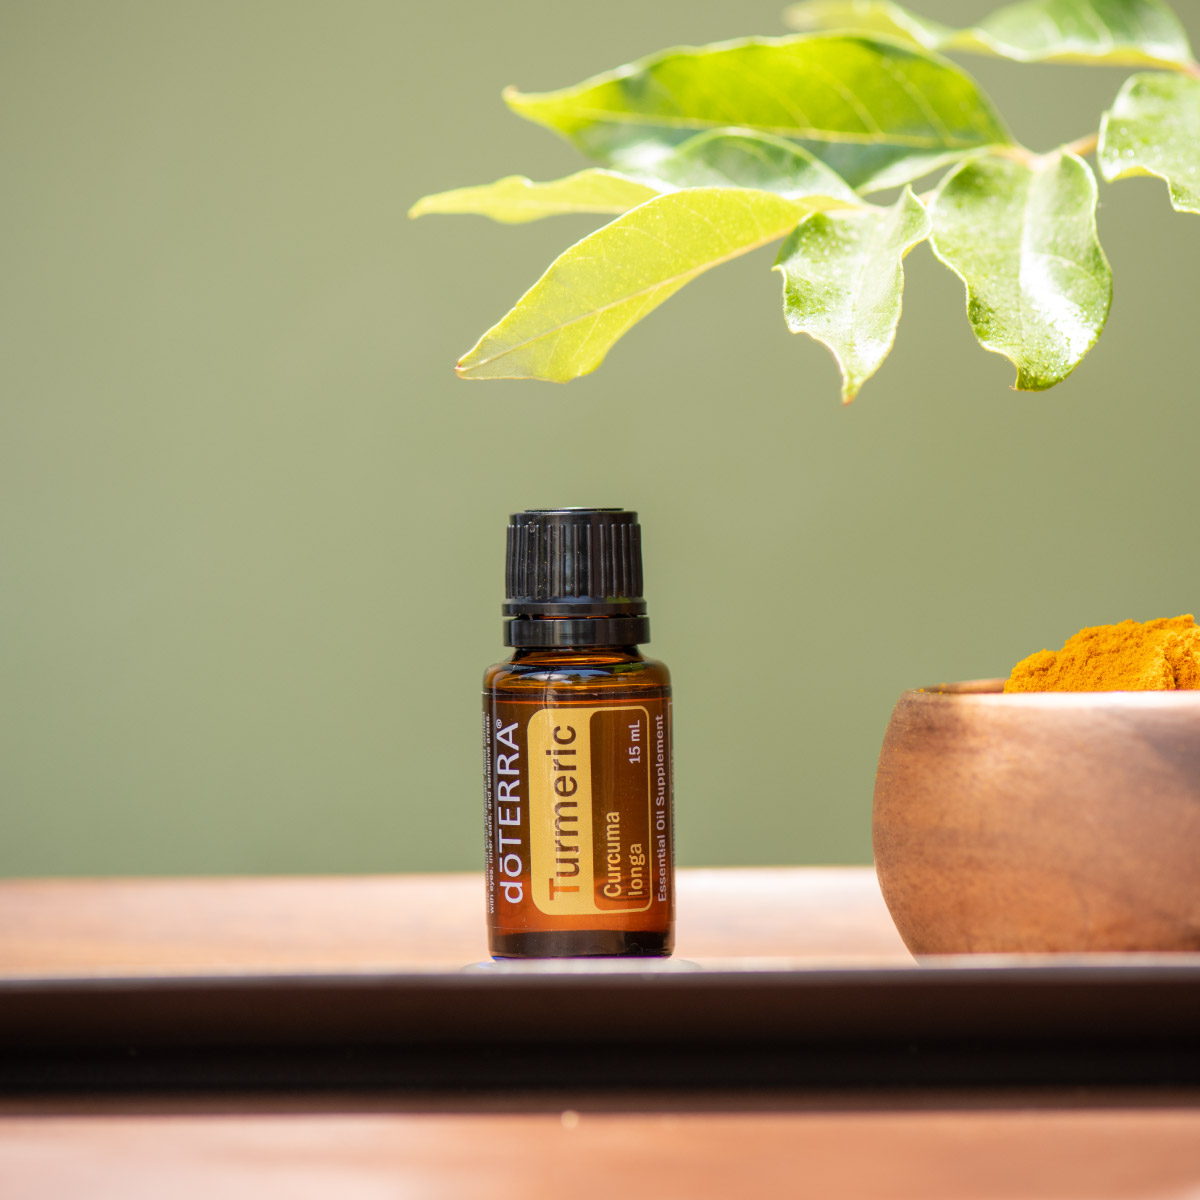 Bottle of Turmeric essential oil next to brass bowl and green leaf. What are the benefits of Turmeric oil? Turmeric oil has internal benefits for the nervous system and immune system, plus it holds benefits for the skin when applied topically.